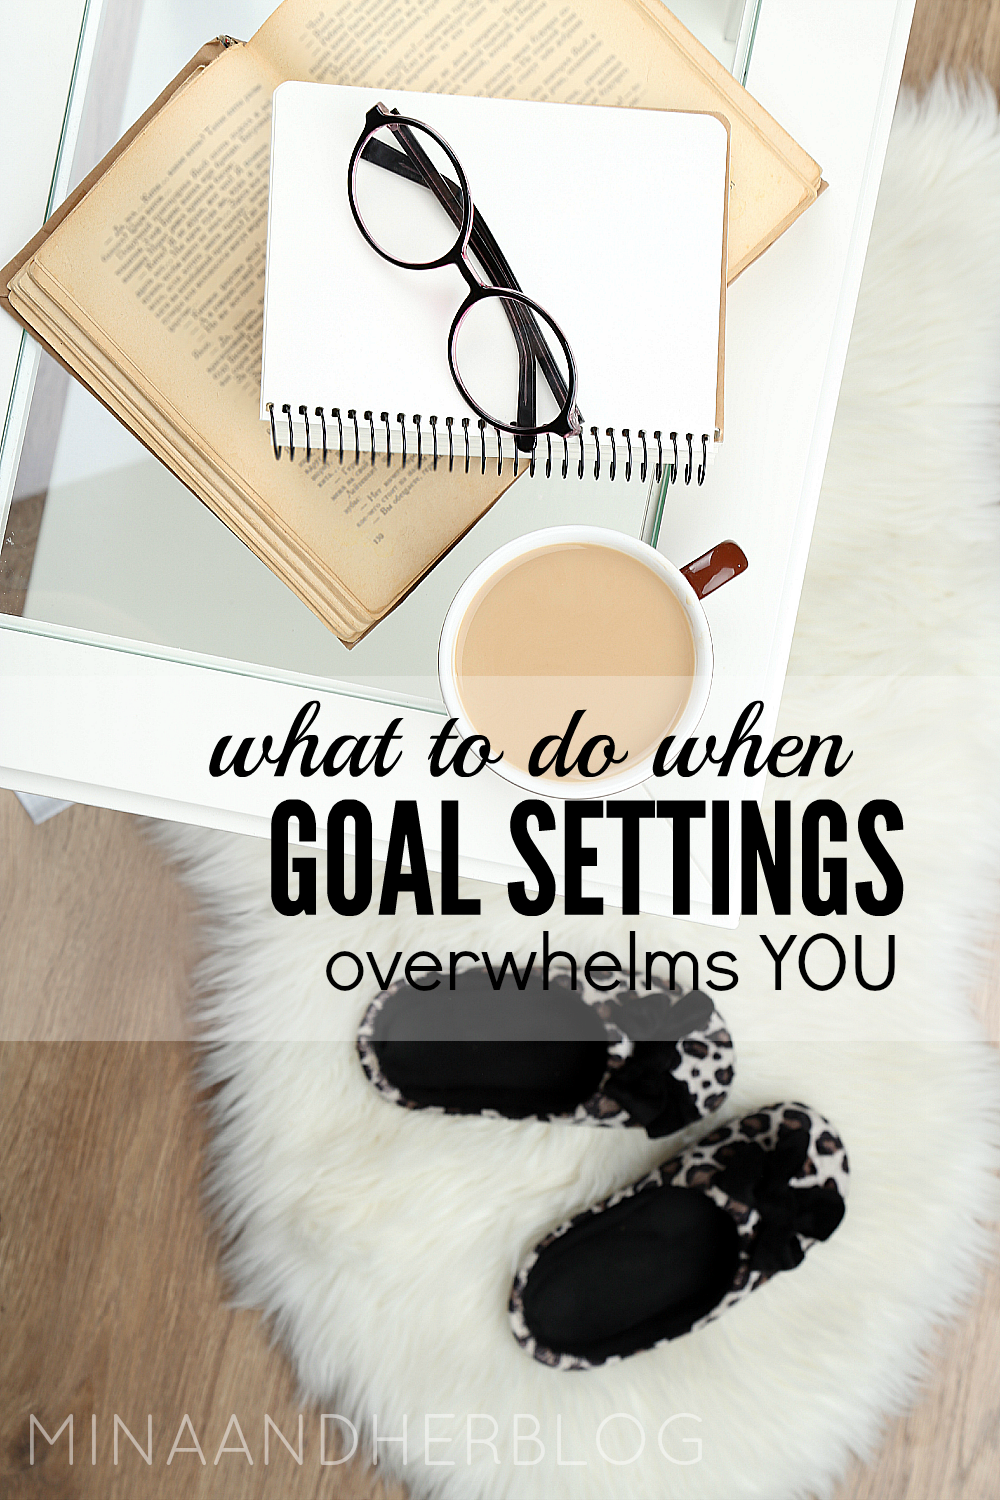 If goal settings overwhelms you, than these 4 steps will help you get unstuck and gain clarity